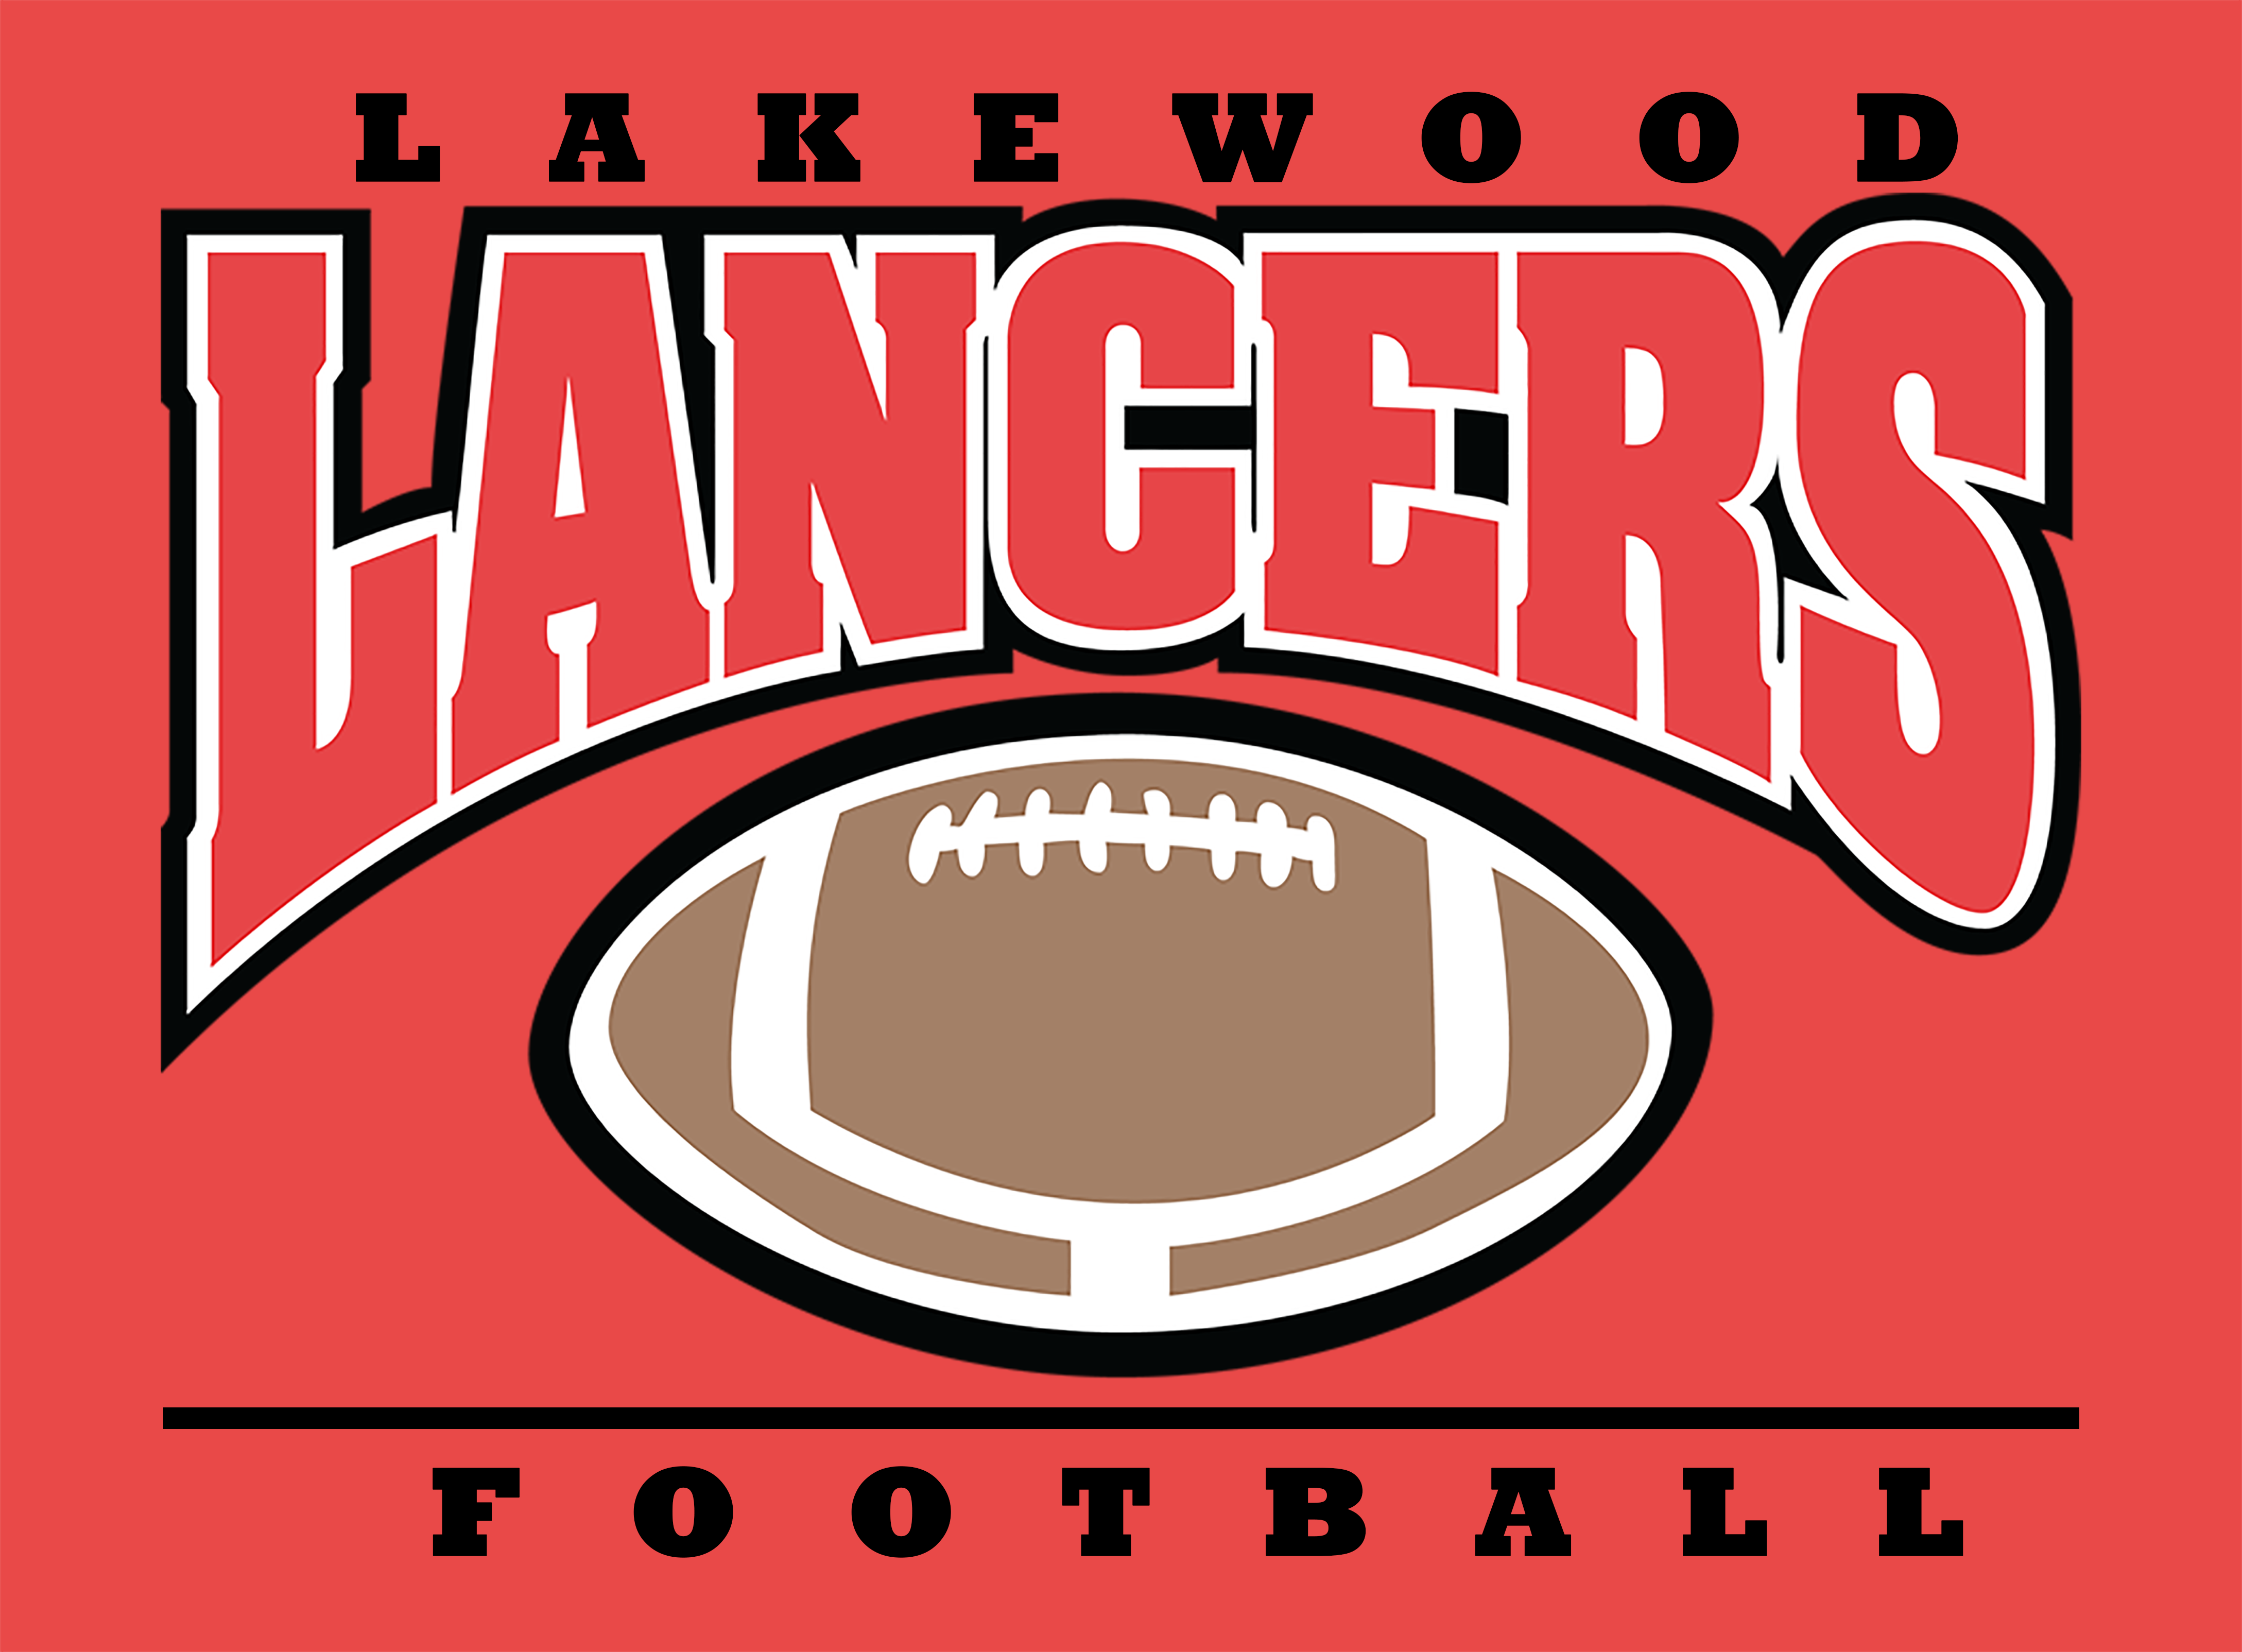 Lakewood FB Logo on Red